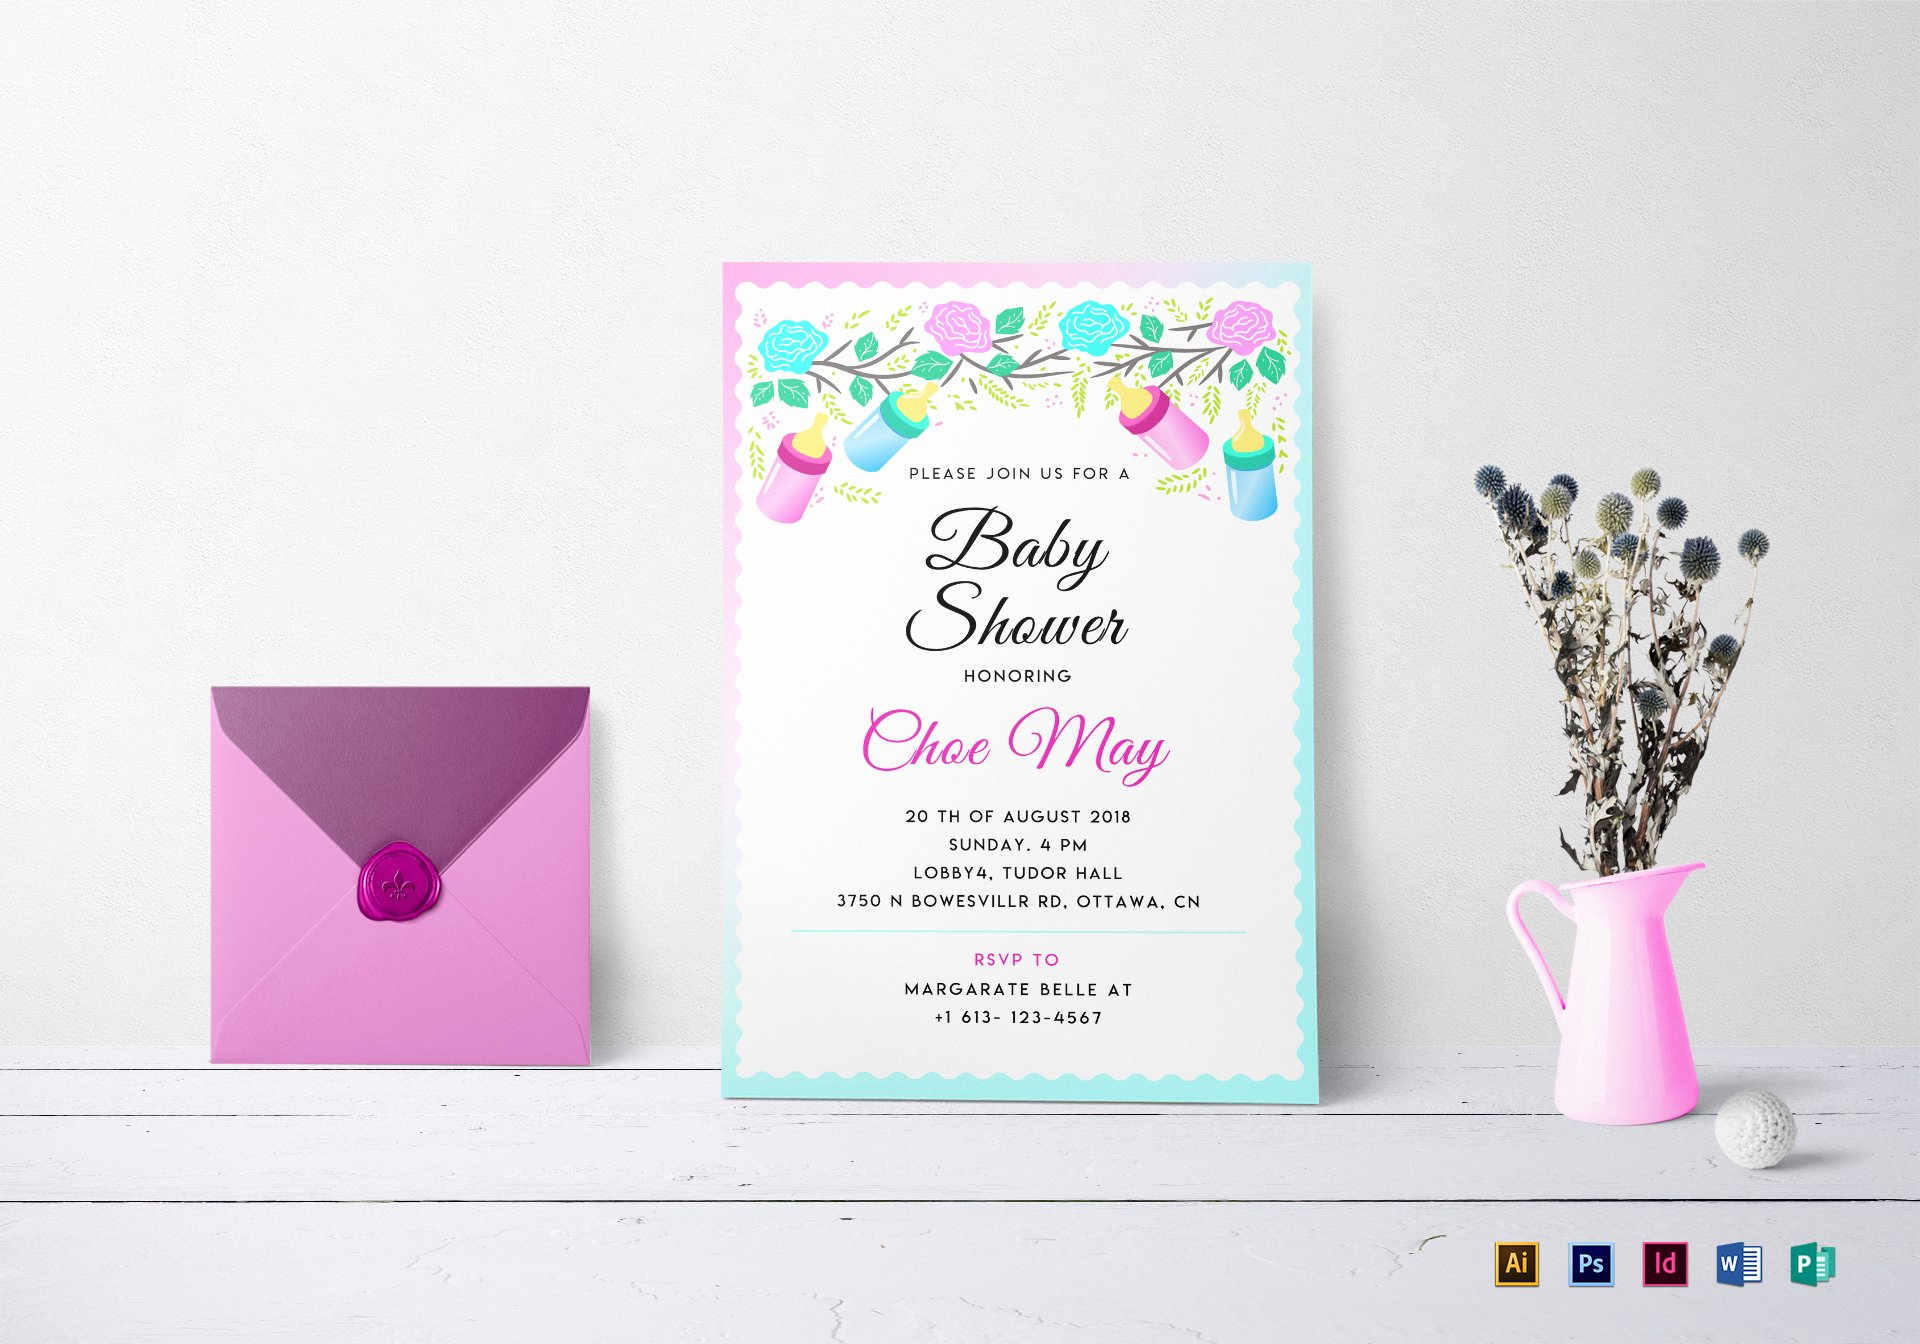 Baby Shower Invitations Templates Editable Lovely Editable Baby Shower Invitation Design Template In Psd